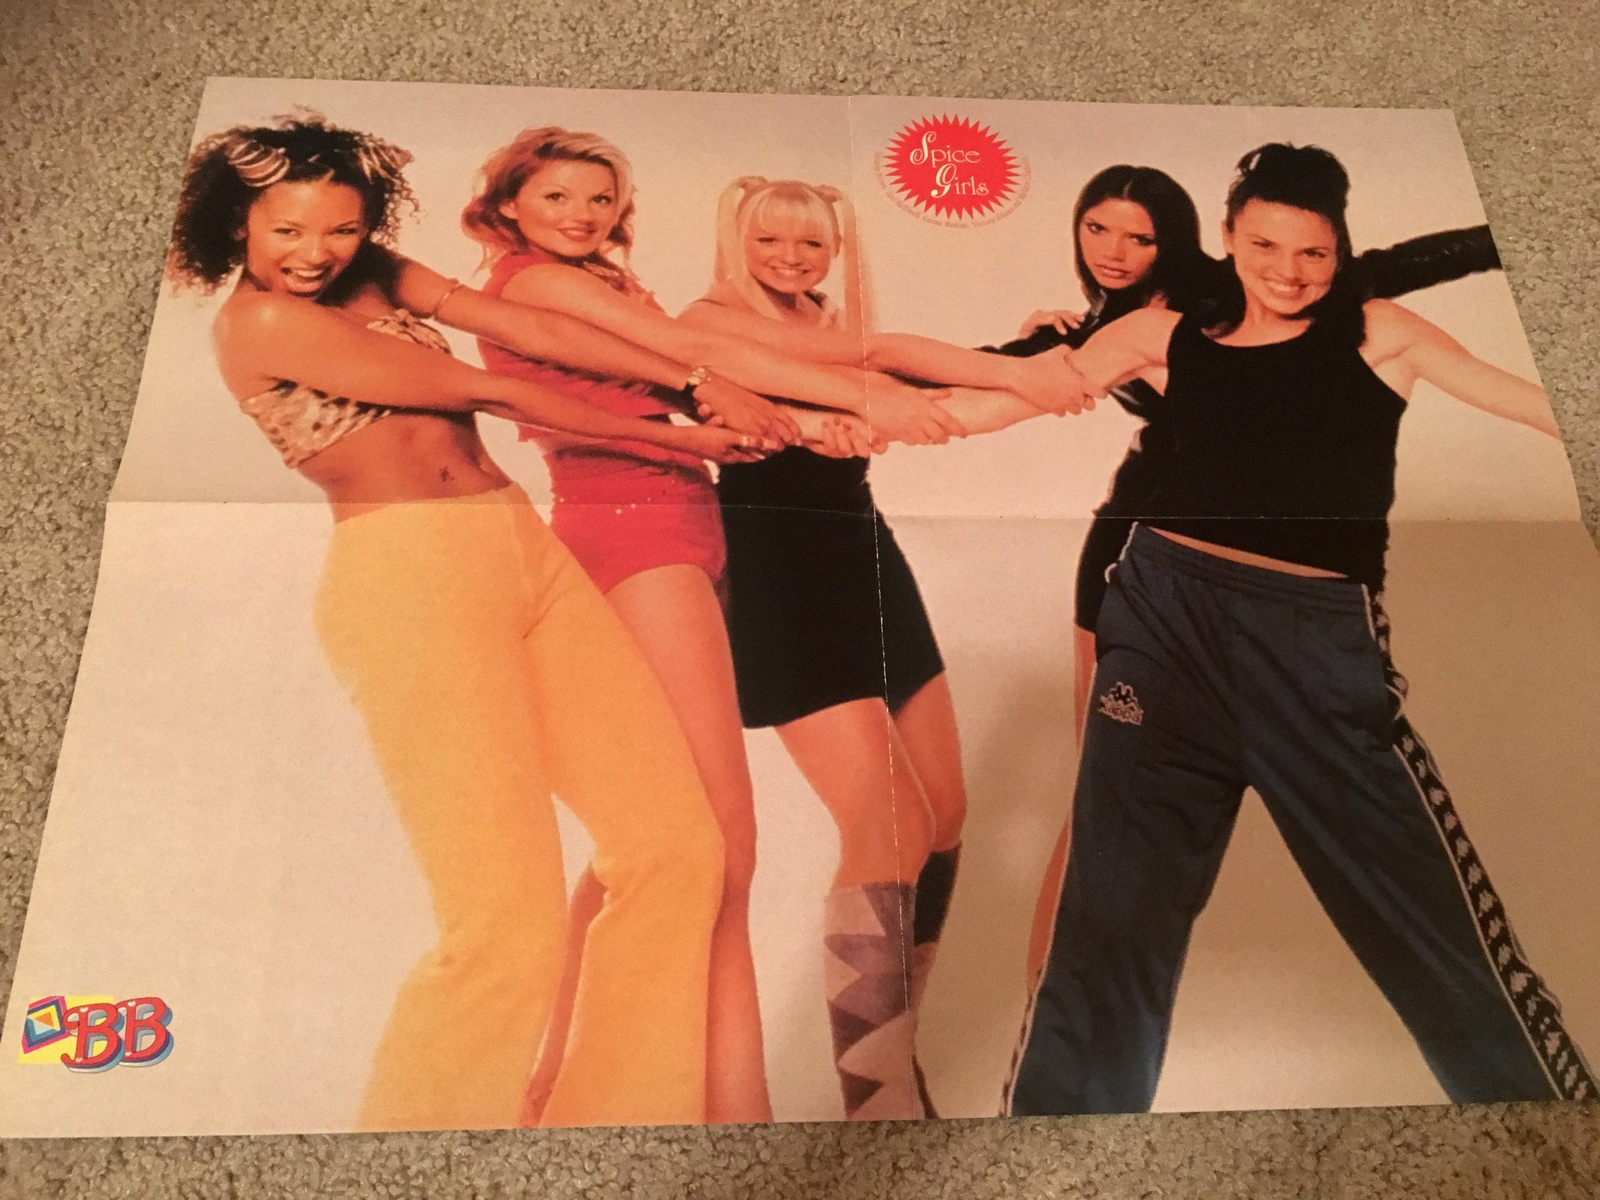 Primary image for Spice Girls Hanson teen magazine poster clipping holding hands Big Bopper